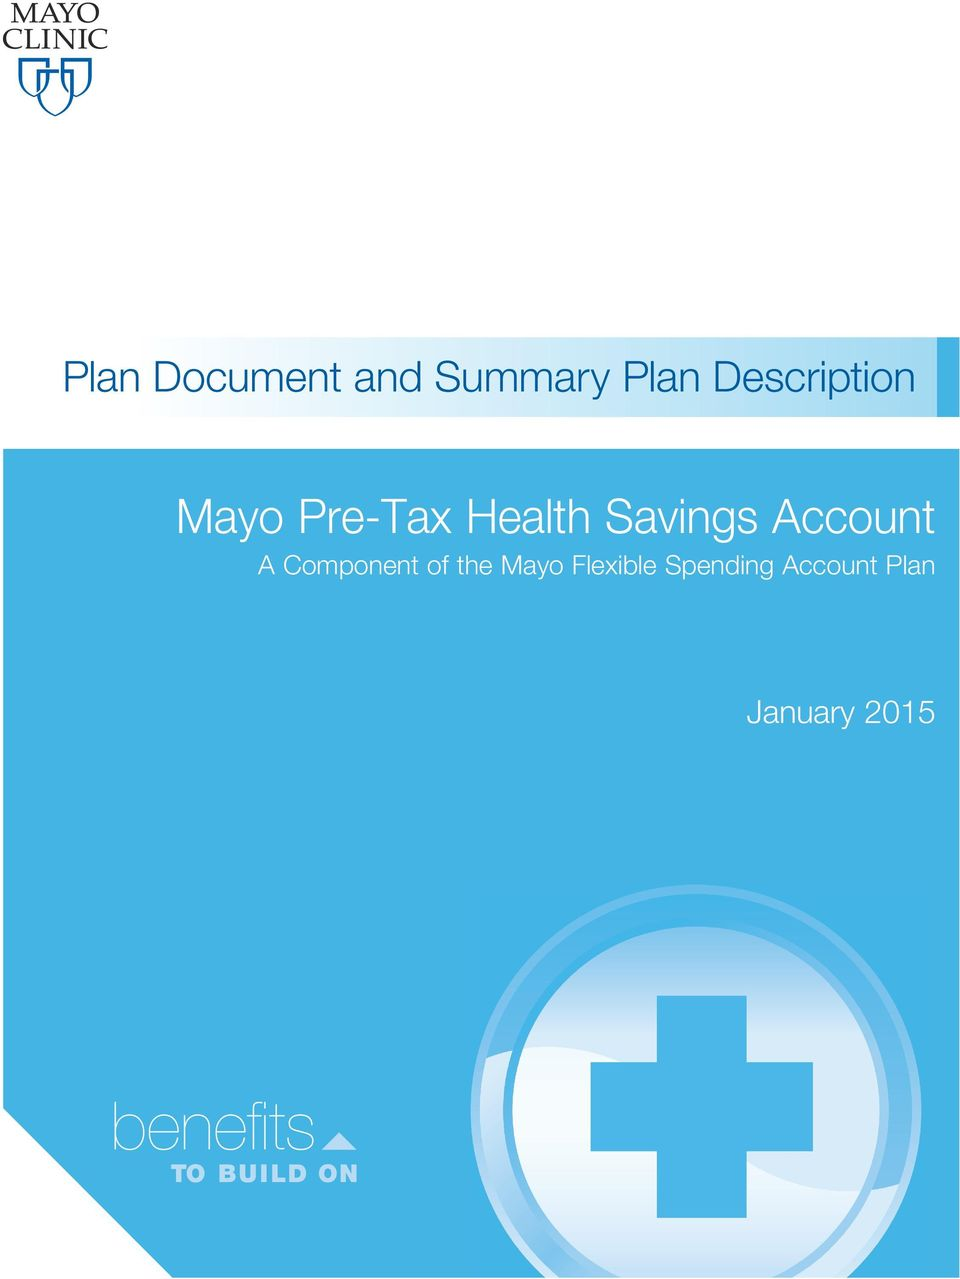 Mayo Flexible Spending Account